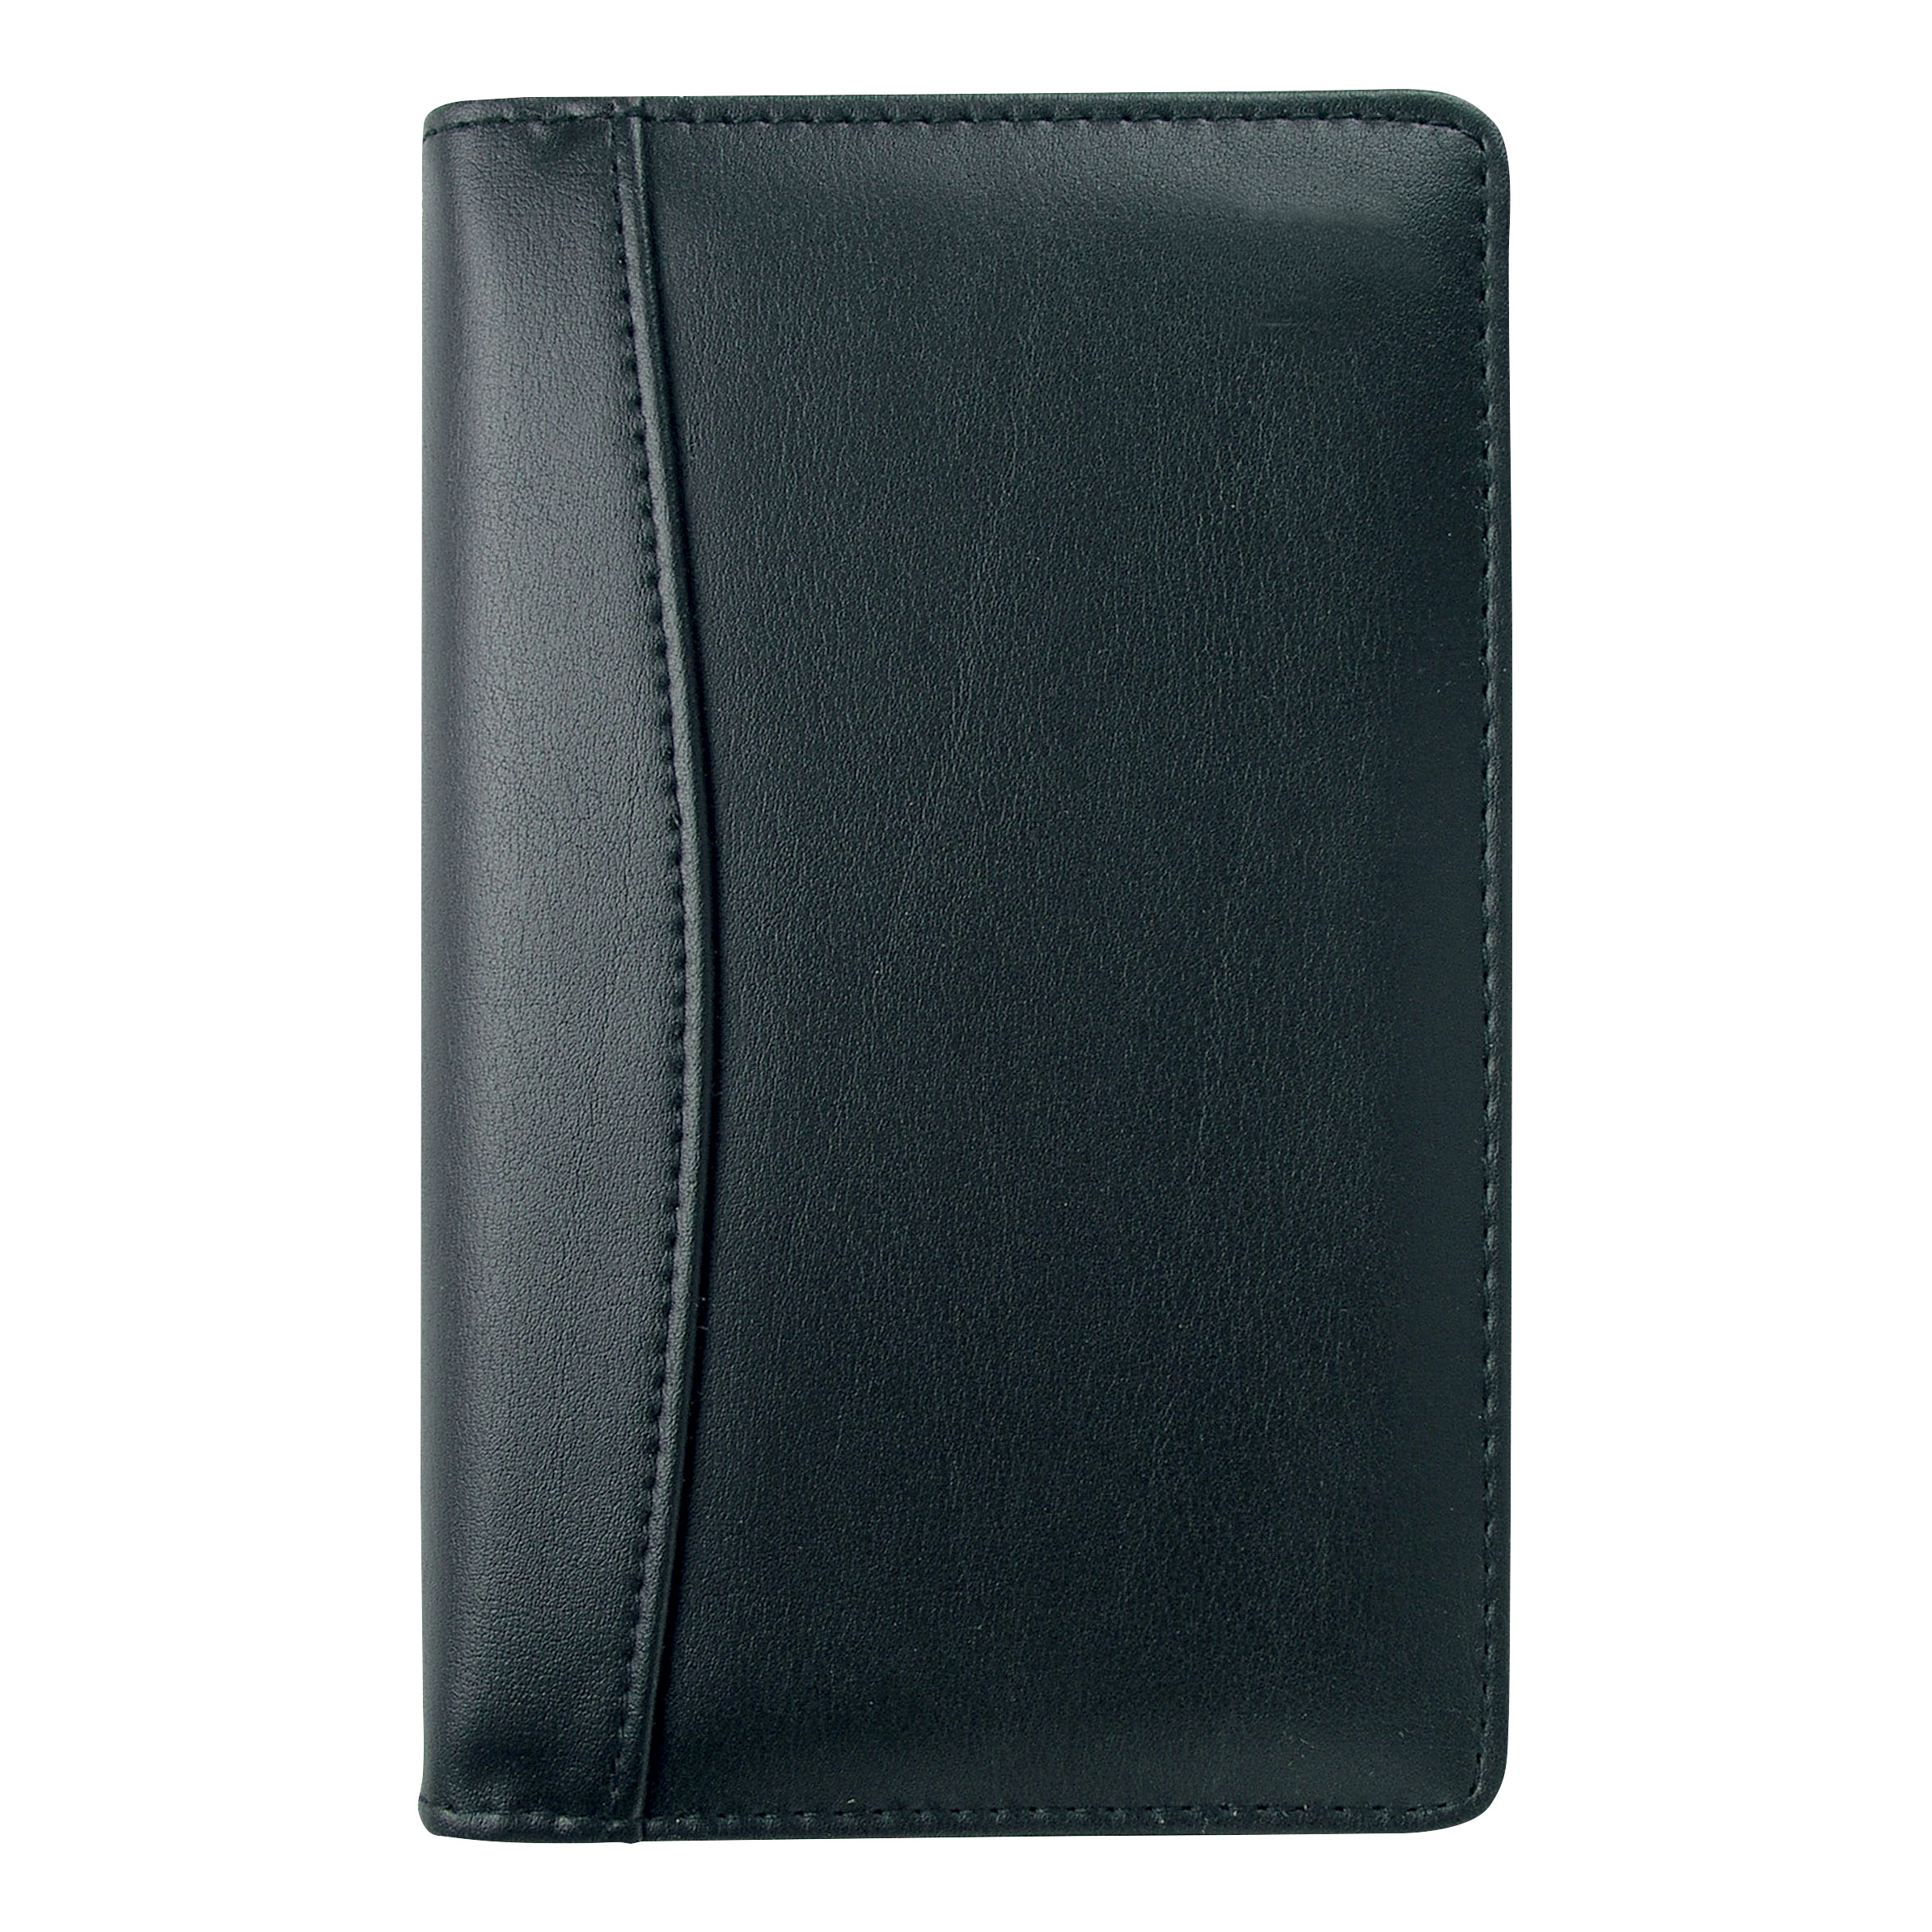 Collins 2019 Elite Pocket Diary Week to View Wirobound 85x153mm Black Ref 1165V 2019